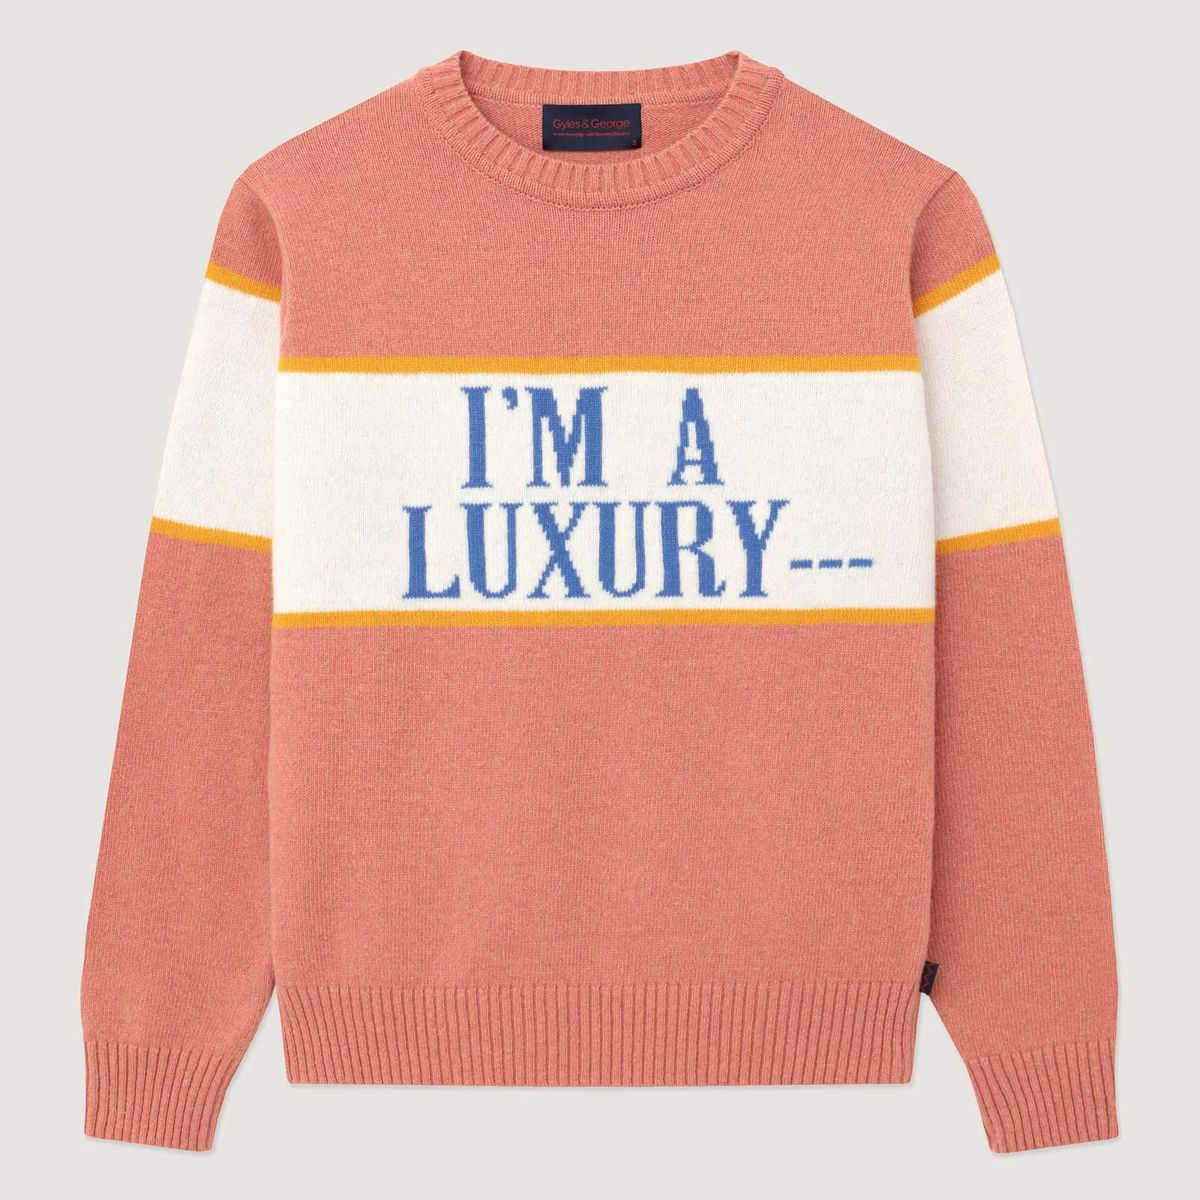 rowing blazers x glyes and george mens im a luxury sweater